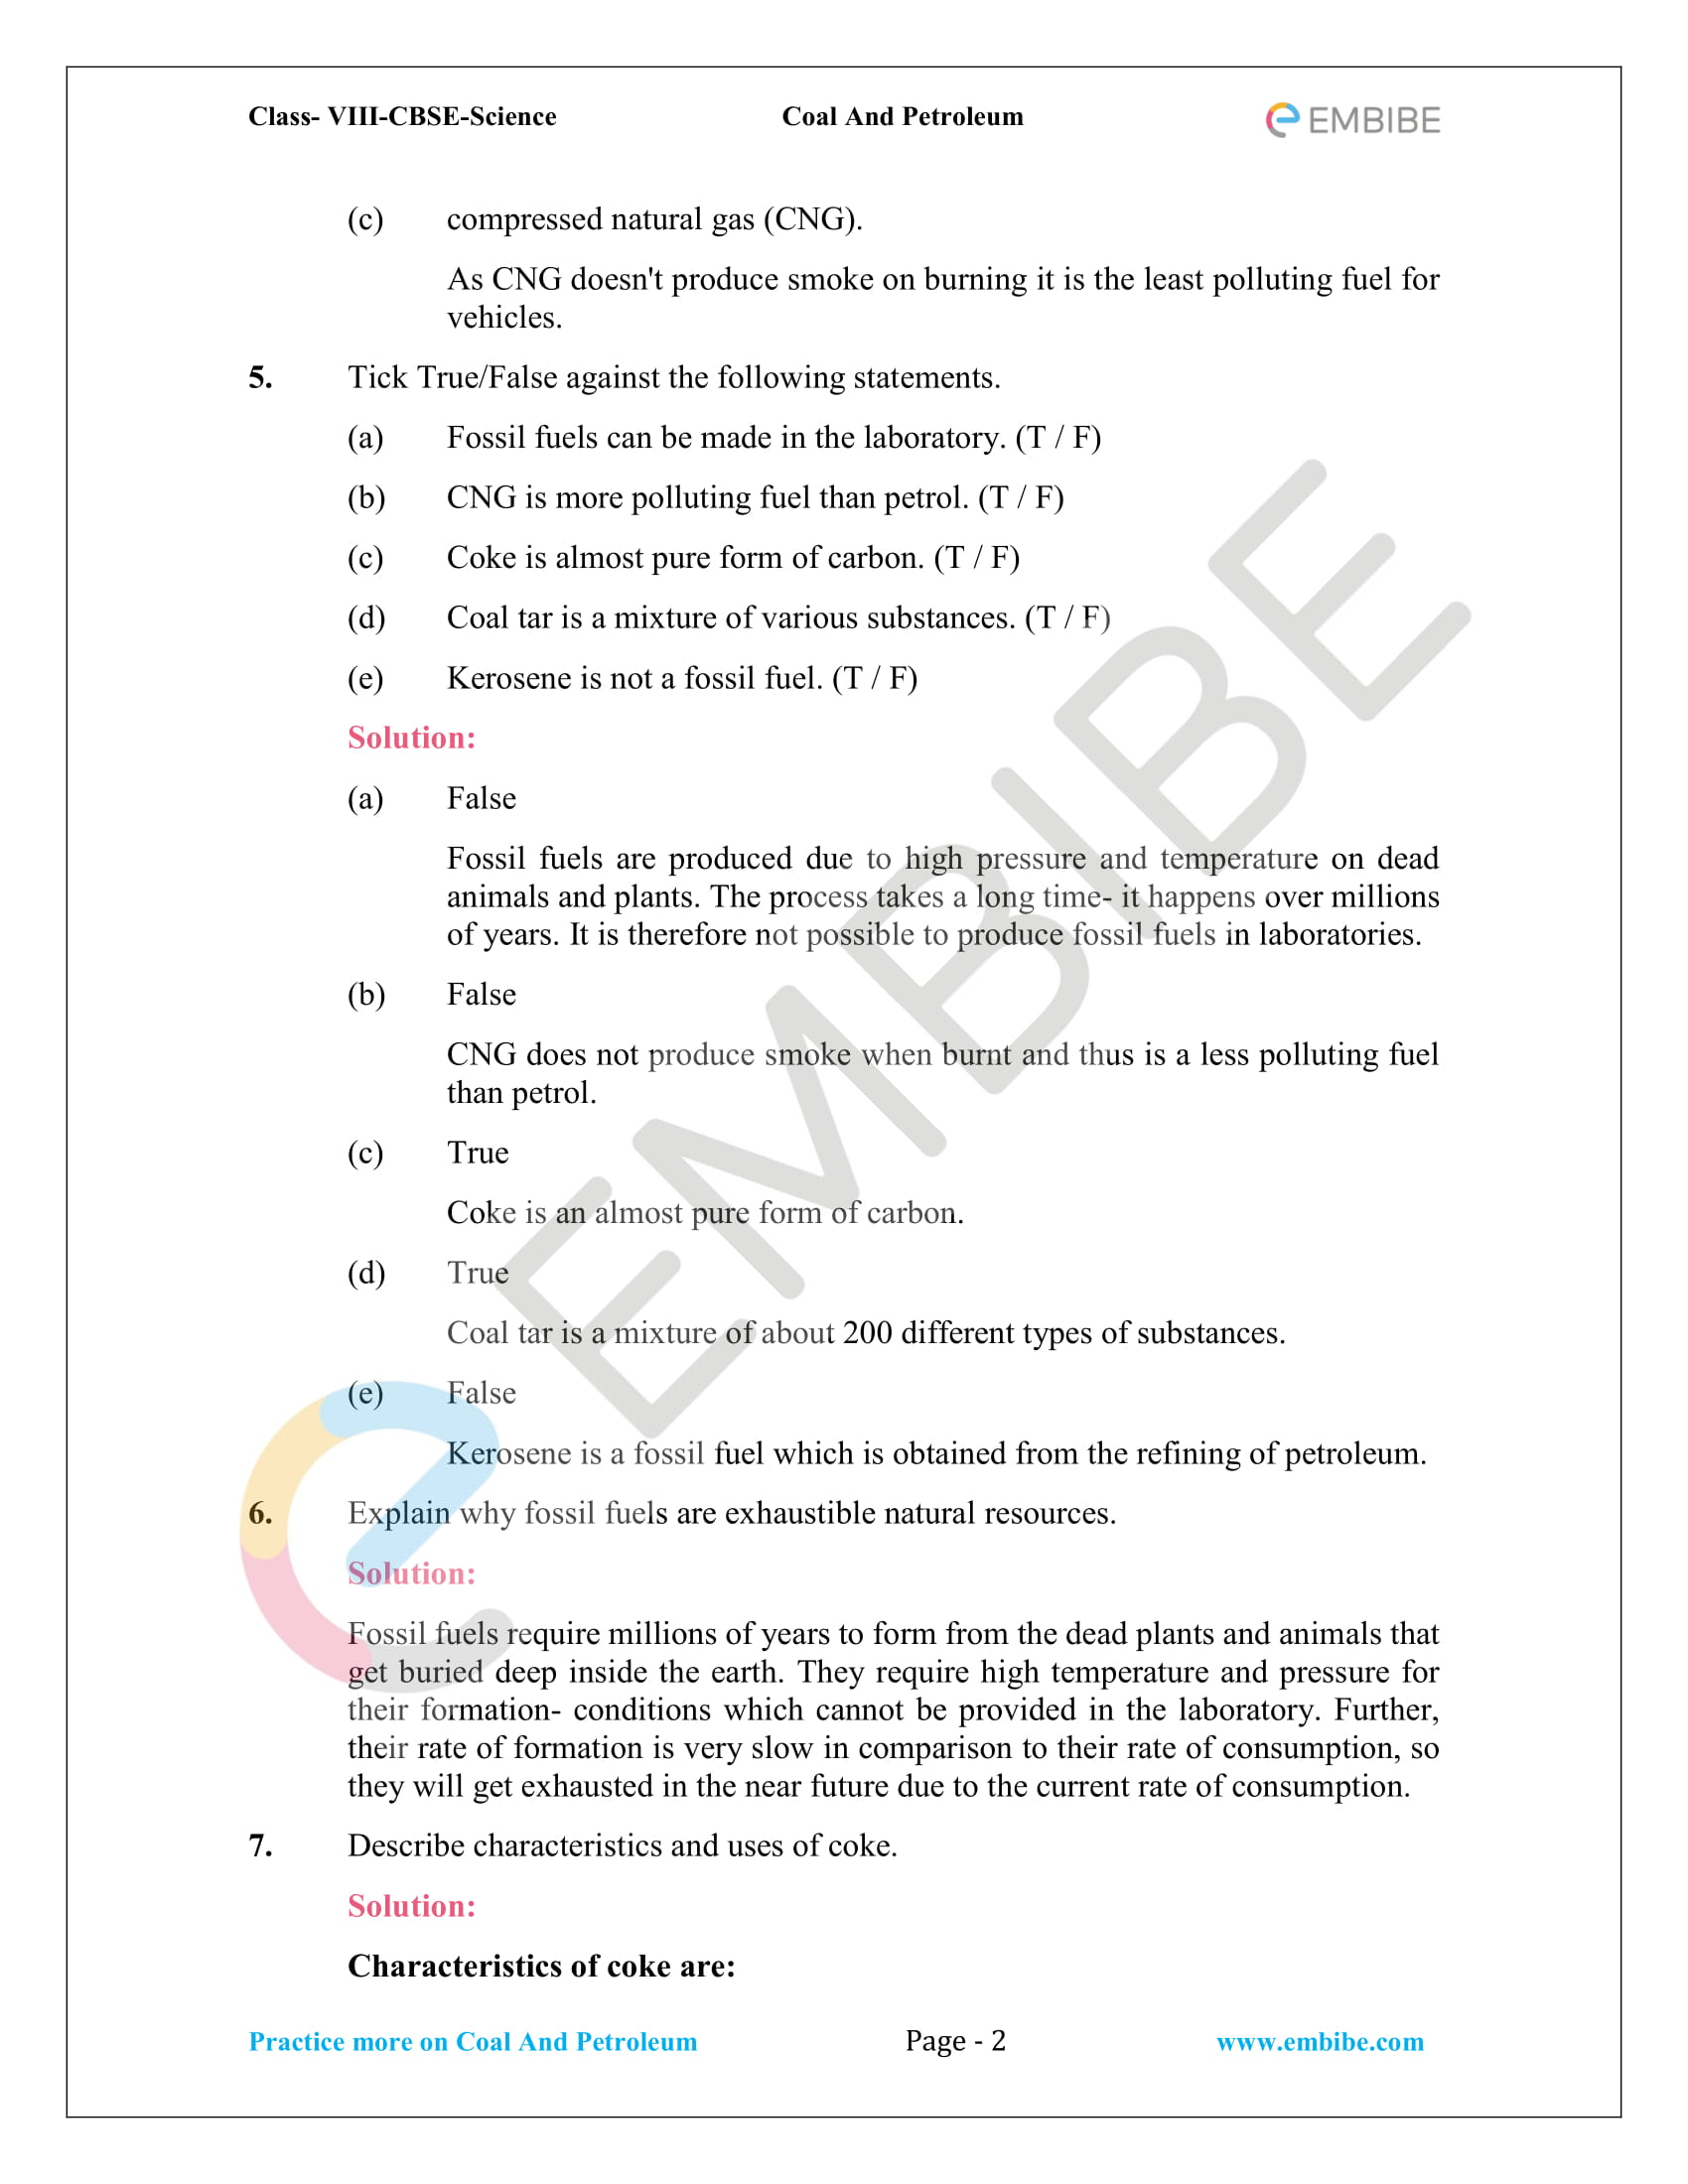 NCERT Solutions For Class 8 Science Chapter 5 PDF: Download